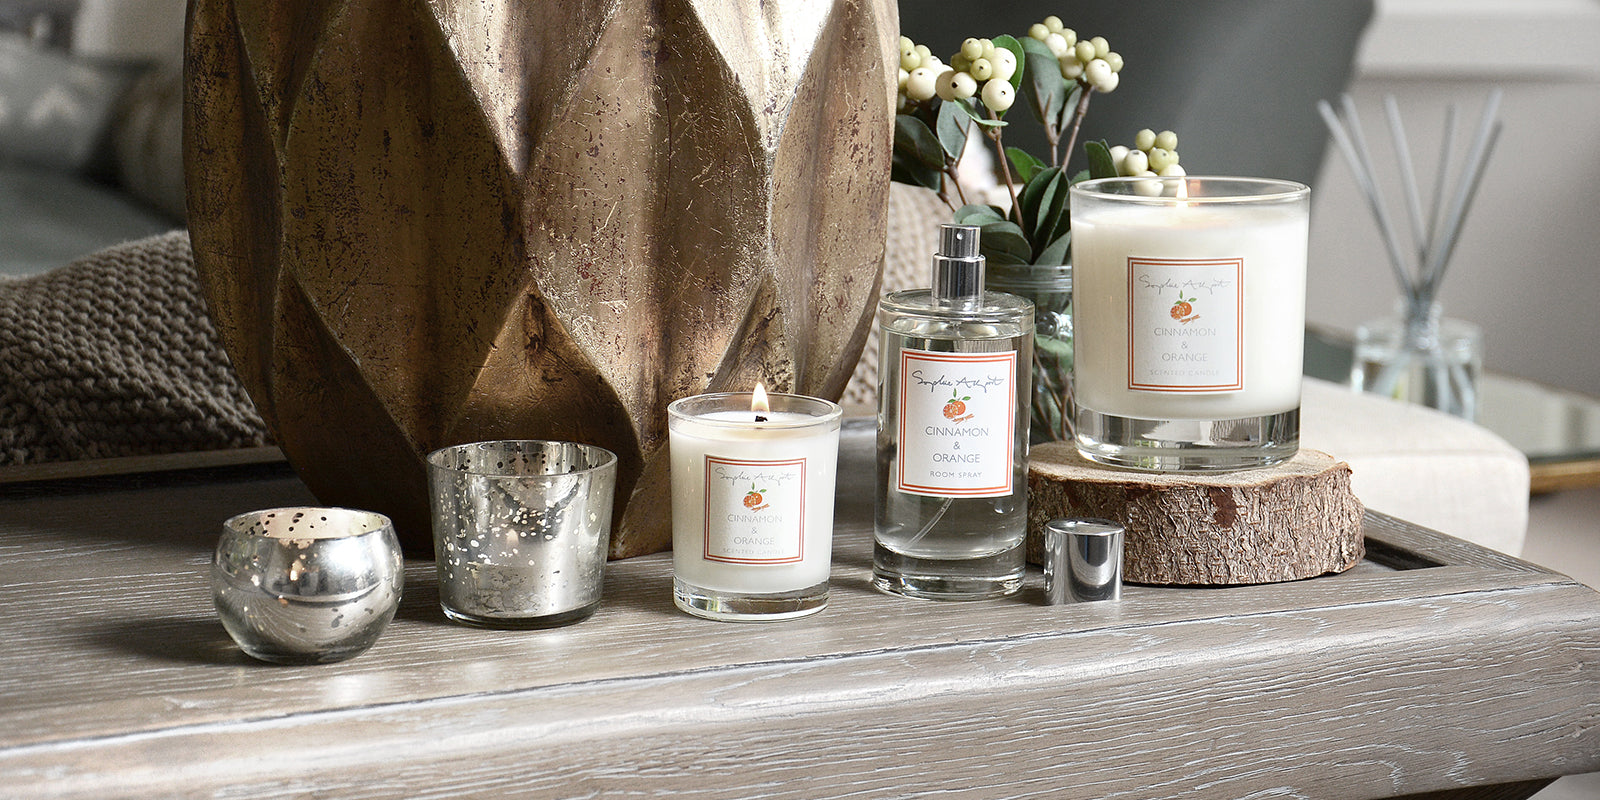 Cinnamon & Orange Home Scent by Sophie Allport